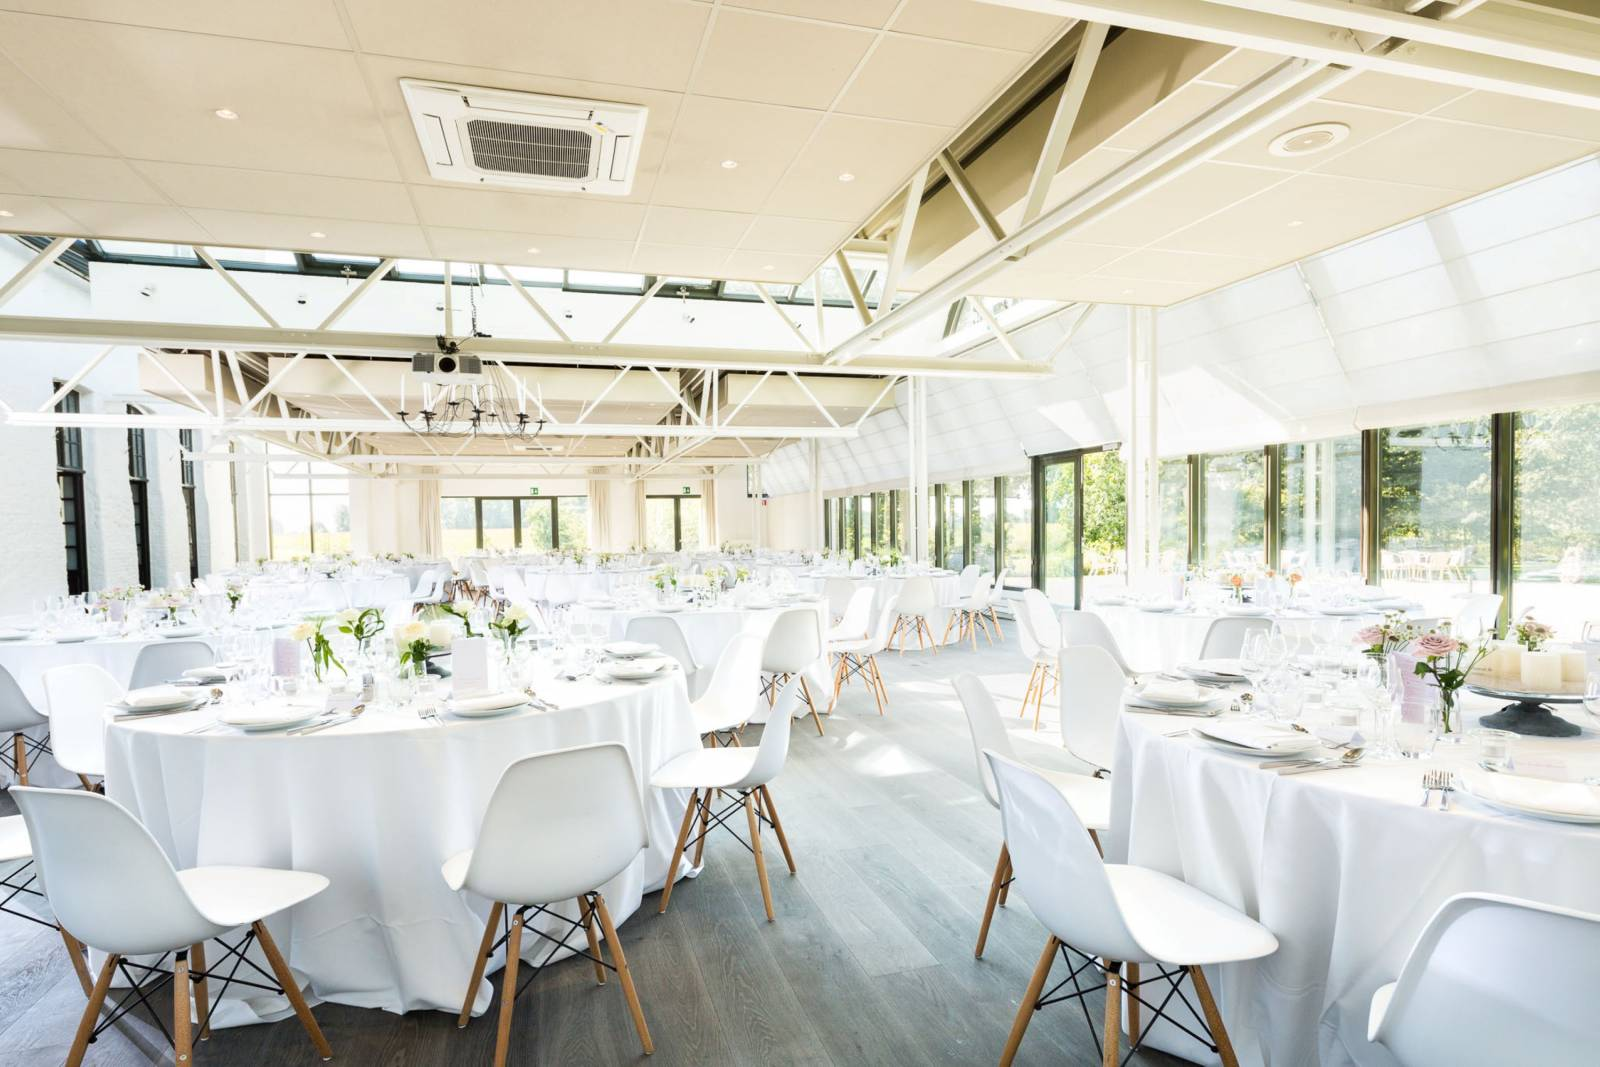 House of Weddings Kasteel Te Lake Feestzaal Oost-Vlaanderen Catering Ceremonie Zulte Gent (13)